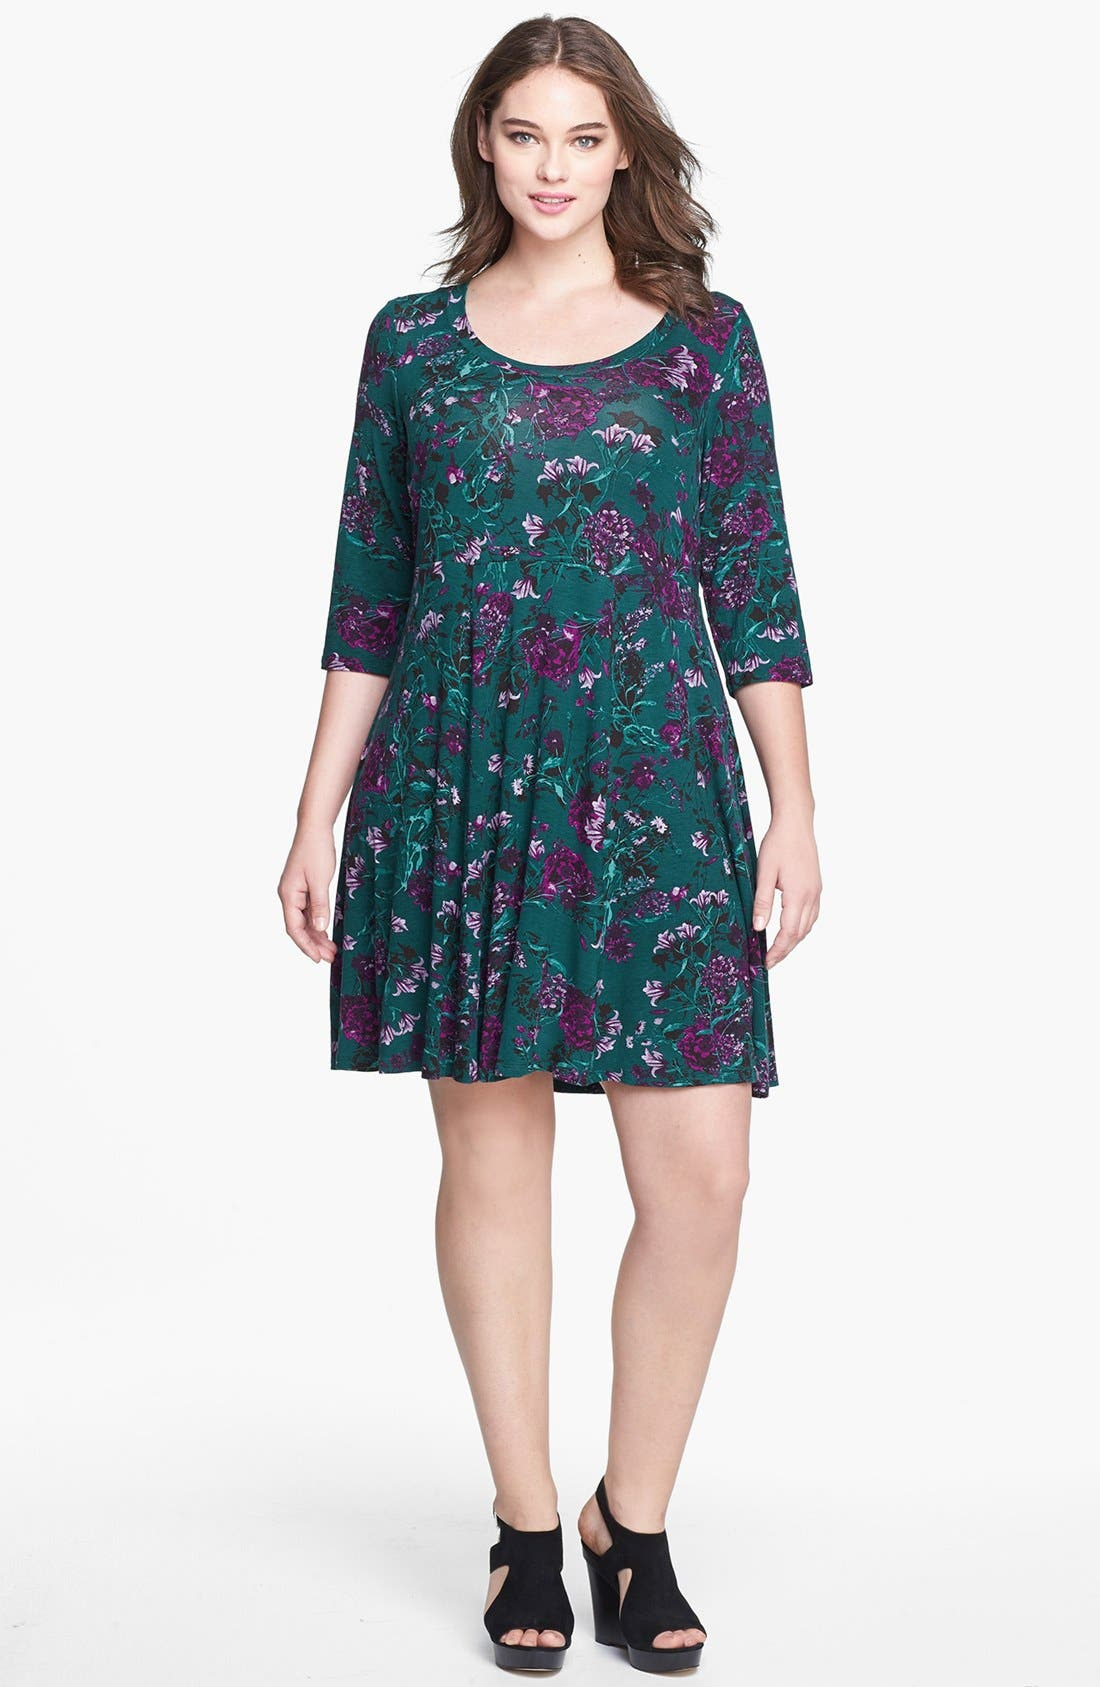 Alternate Image 1 Selected - Evans Floral Print Skater Dress (Plus Size)